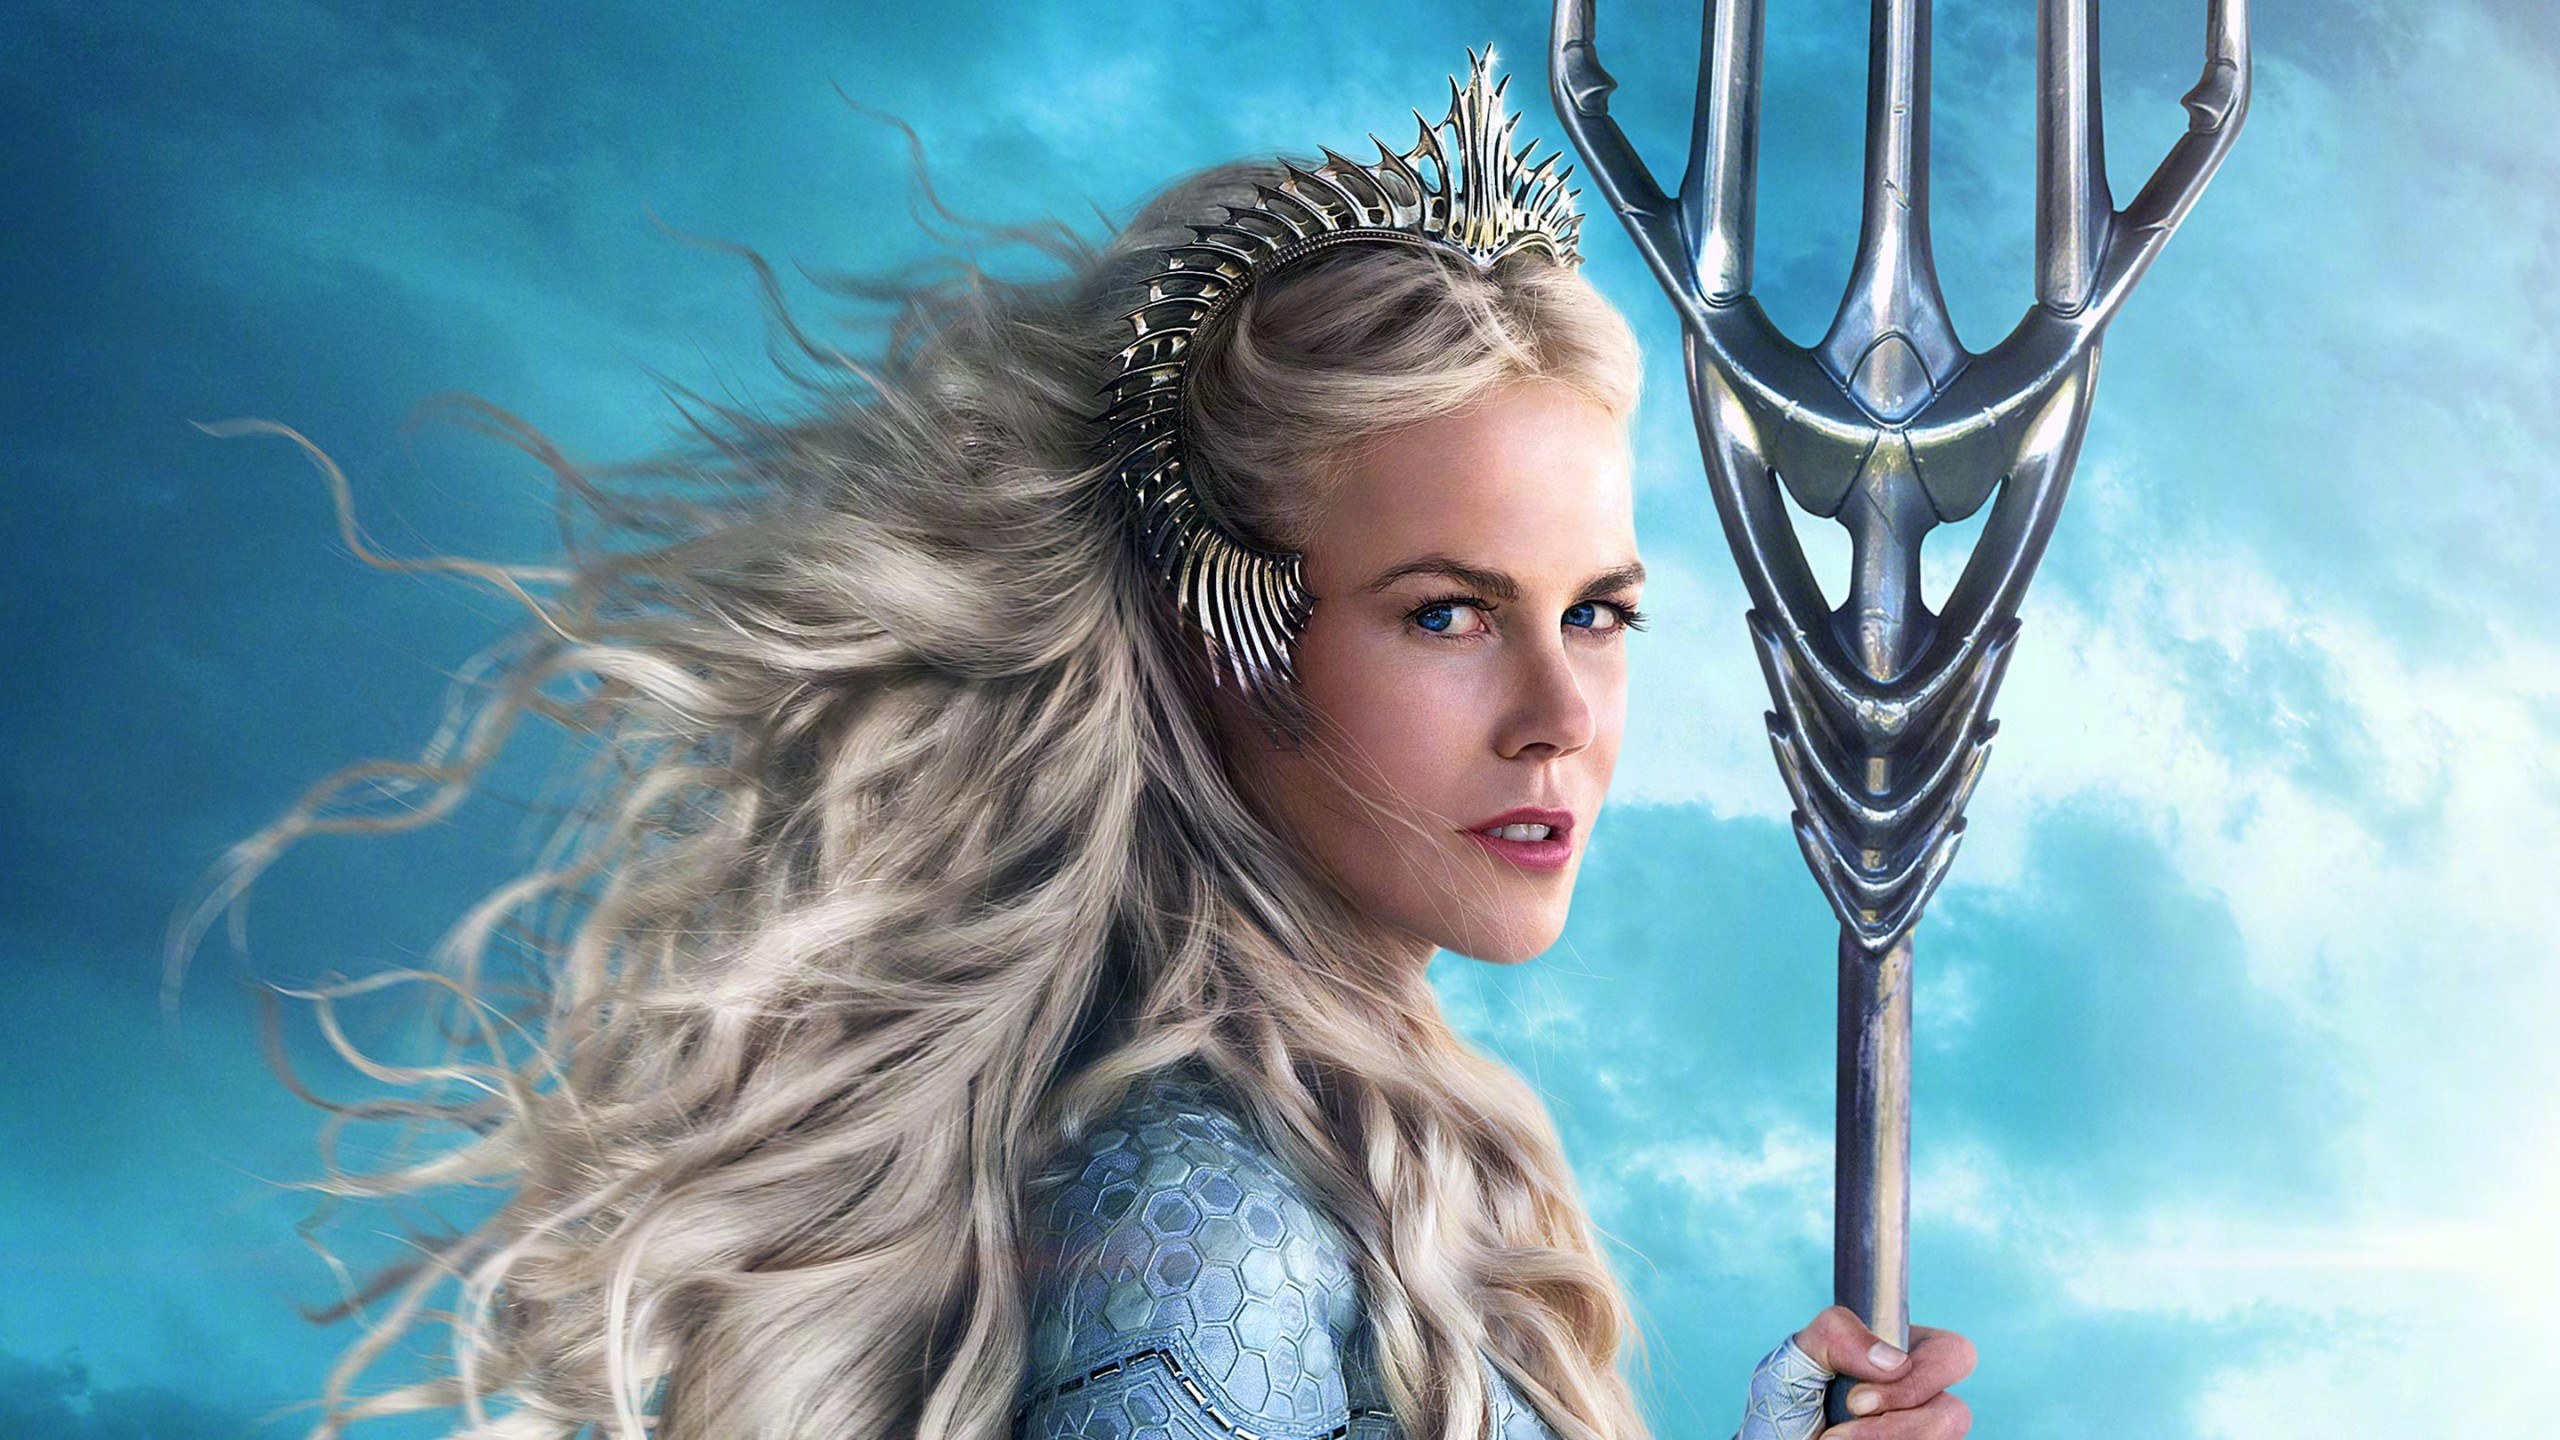 3d Wallpaper For Ipad Nicole Kidman As Queen Atlanna In Aquaman Wallpapers Hd